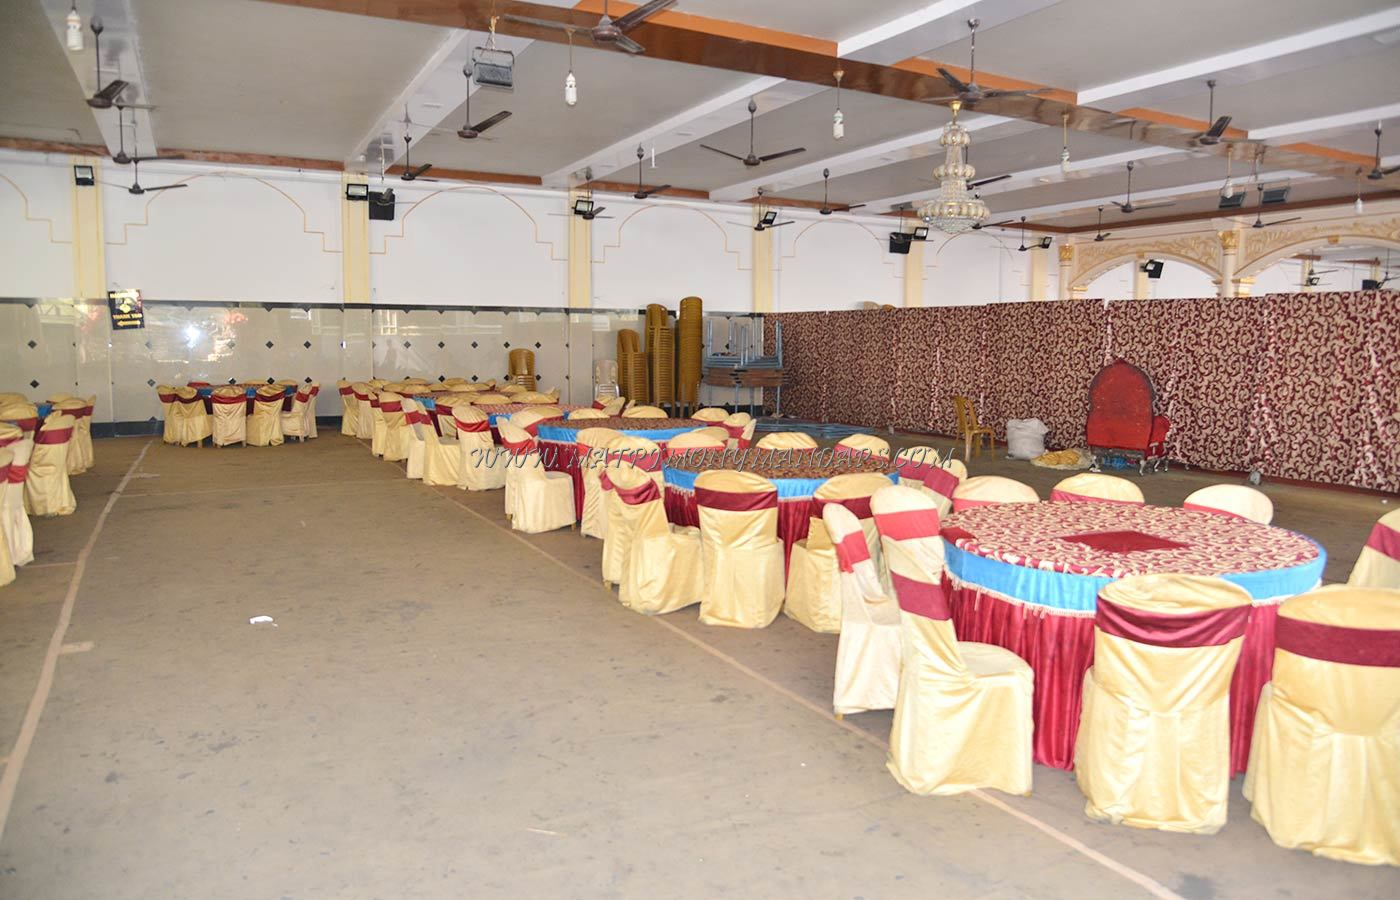 Find the availability of the Hi Tech Garden Function Hall in Malakpet, Hyderabad and avail special offers